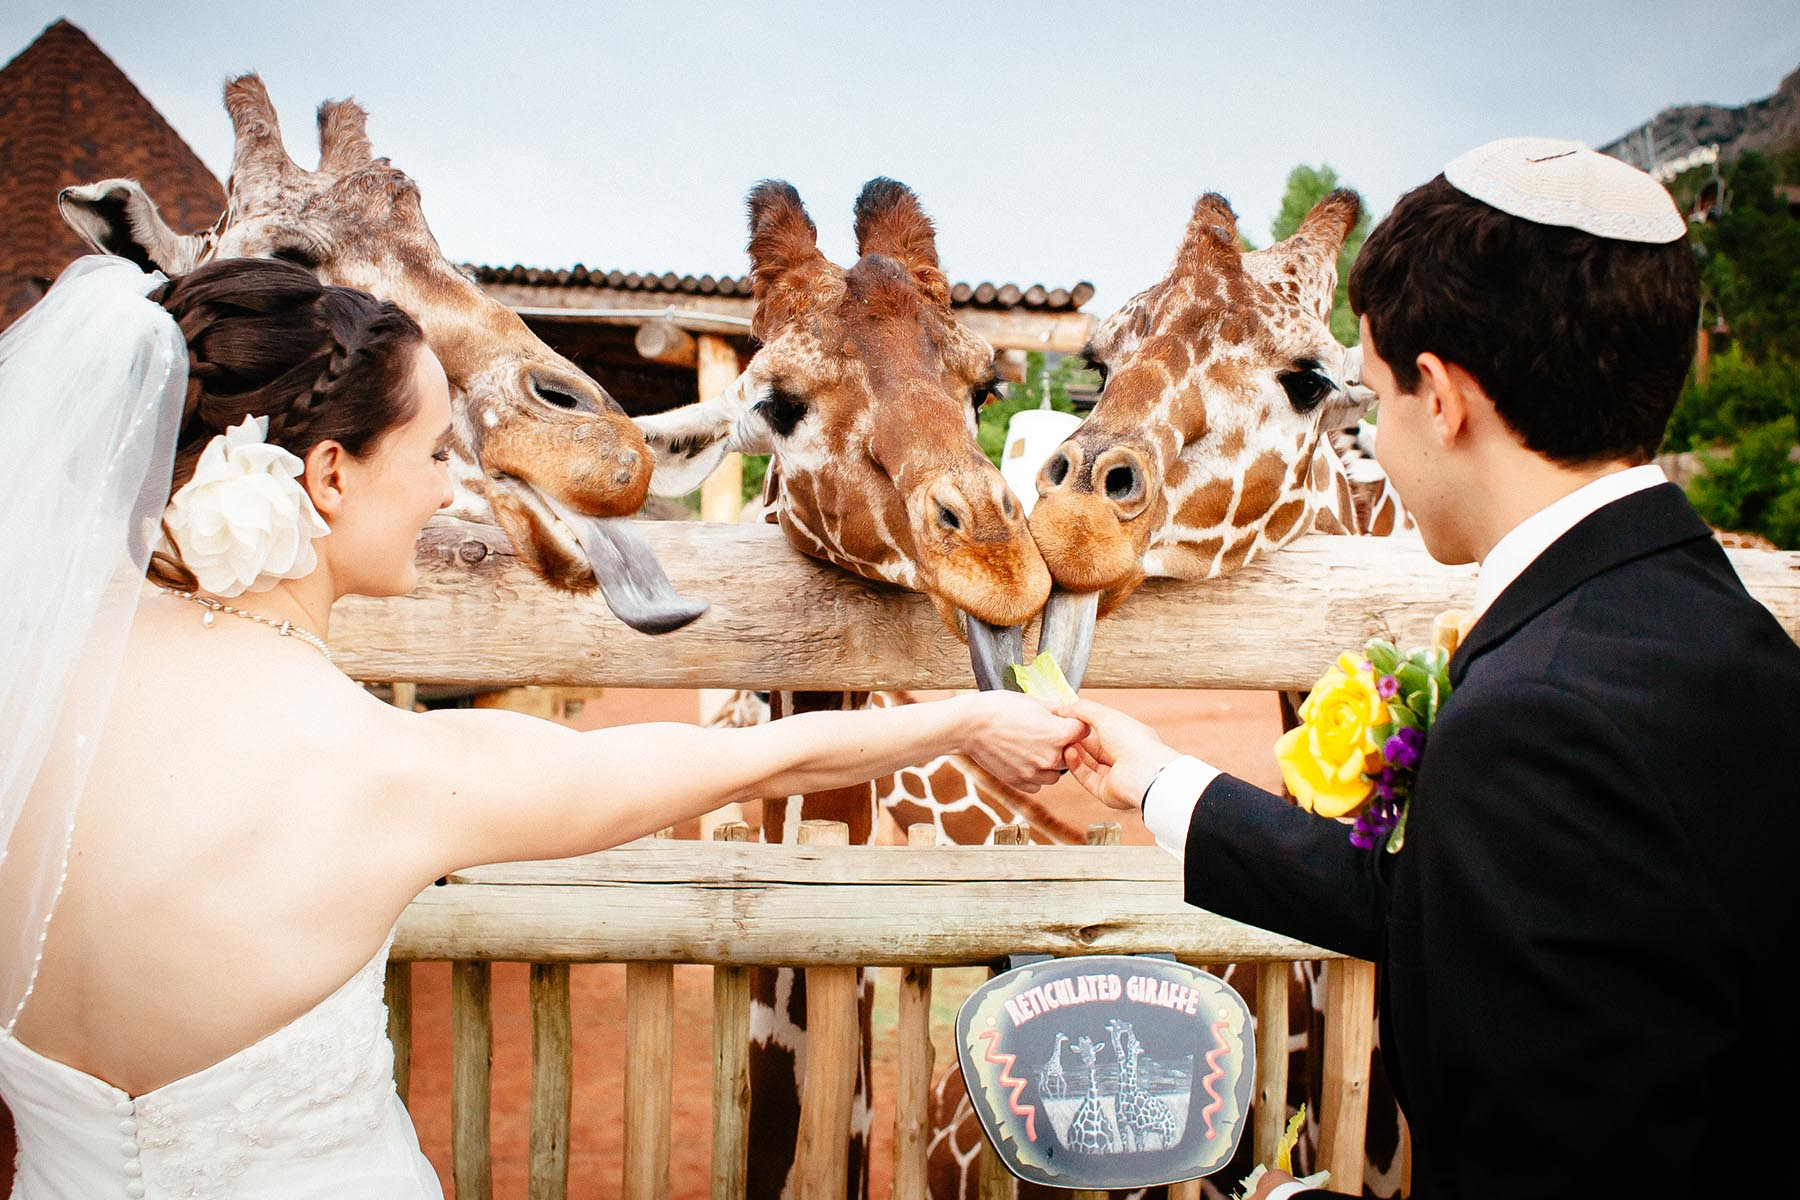 Wedding couple feeds giraffes at the Cheyenne Mountain Zoo.